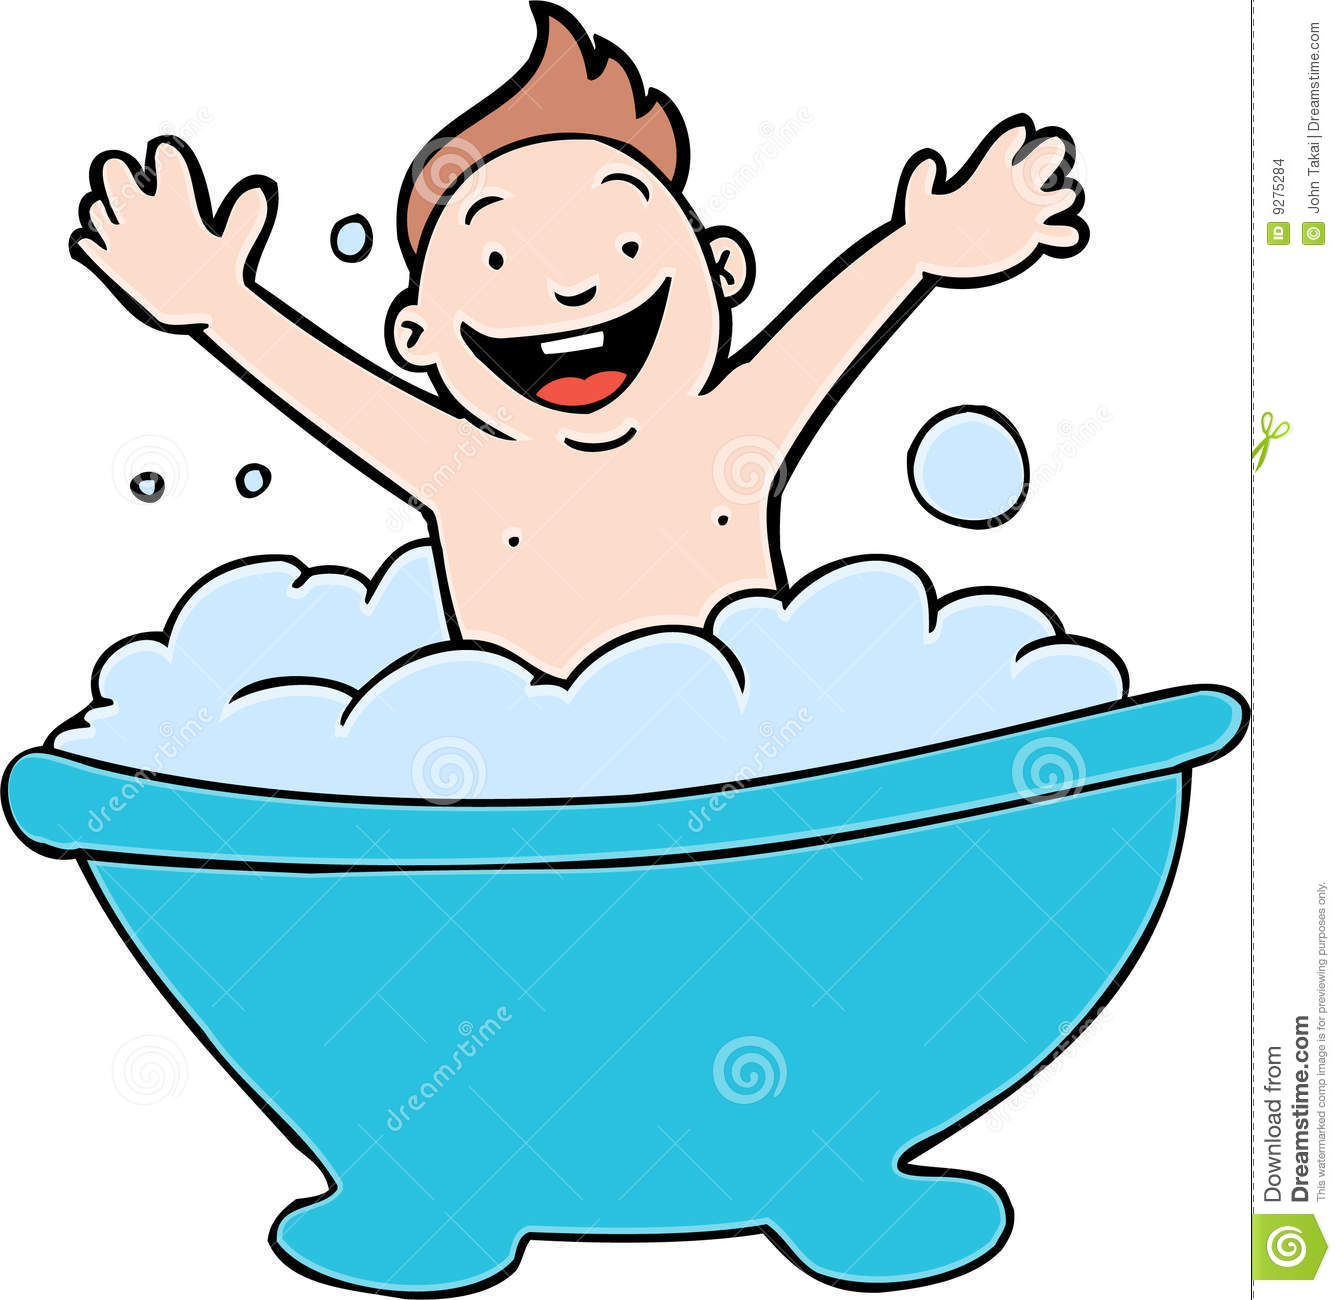 Bathroom clipart kid shower A To collection Bath Baby